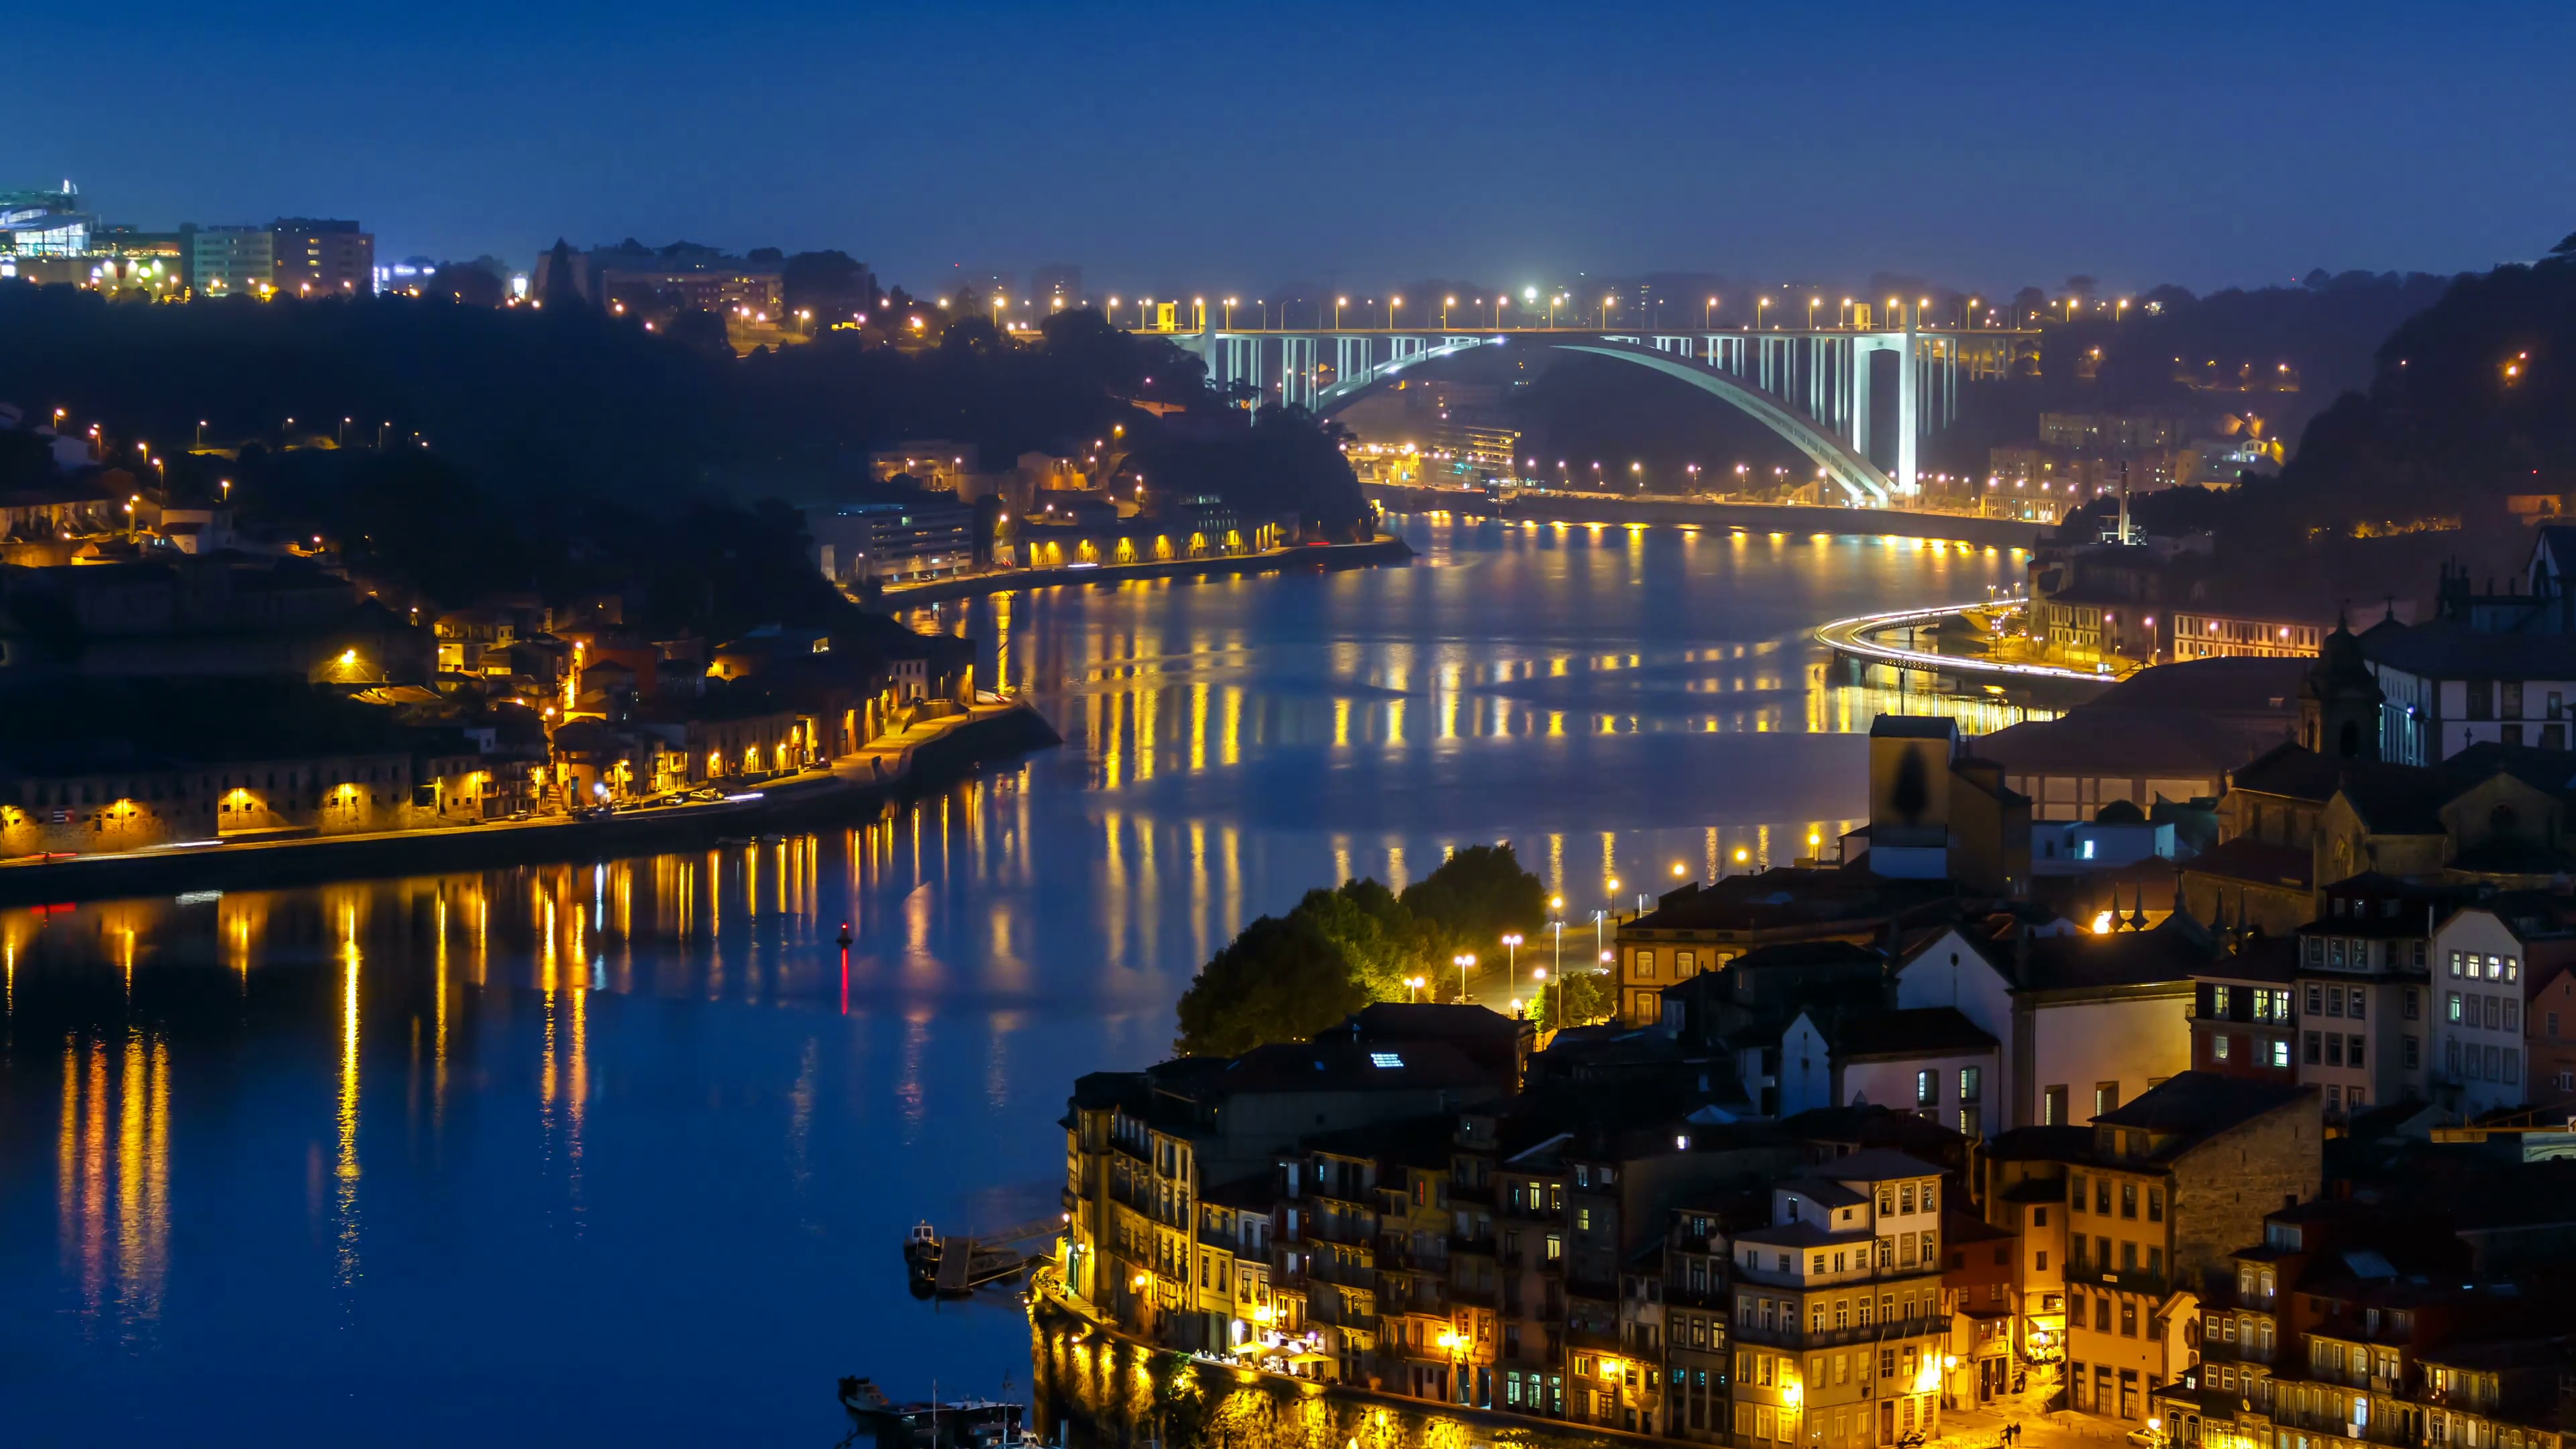 City of Porto and Gaia from evening to night by the Douro river ...